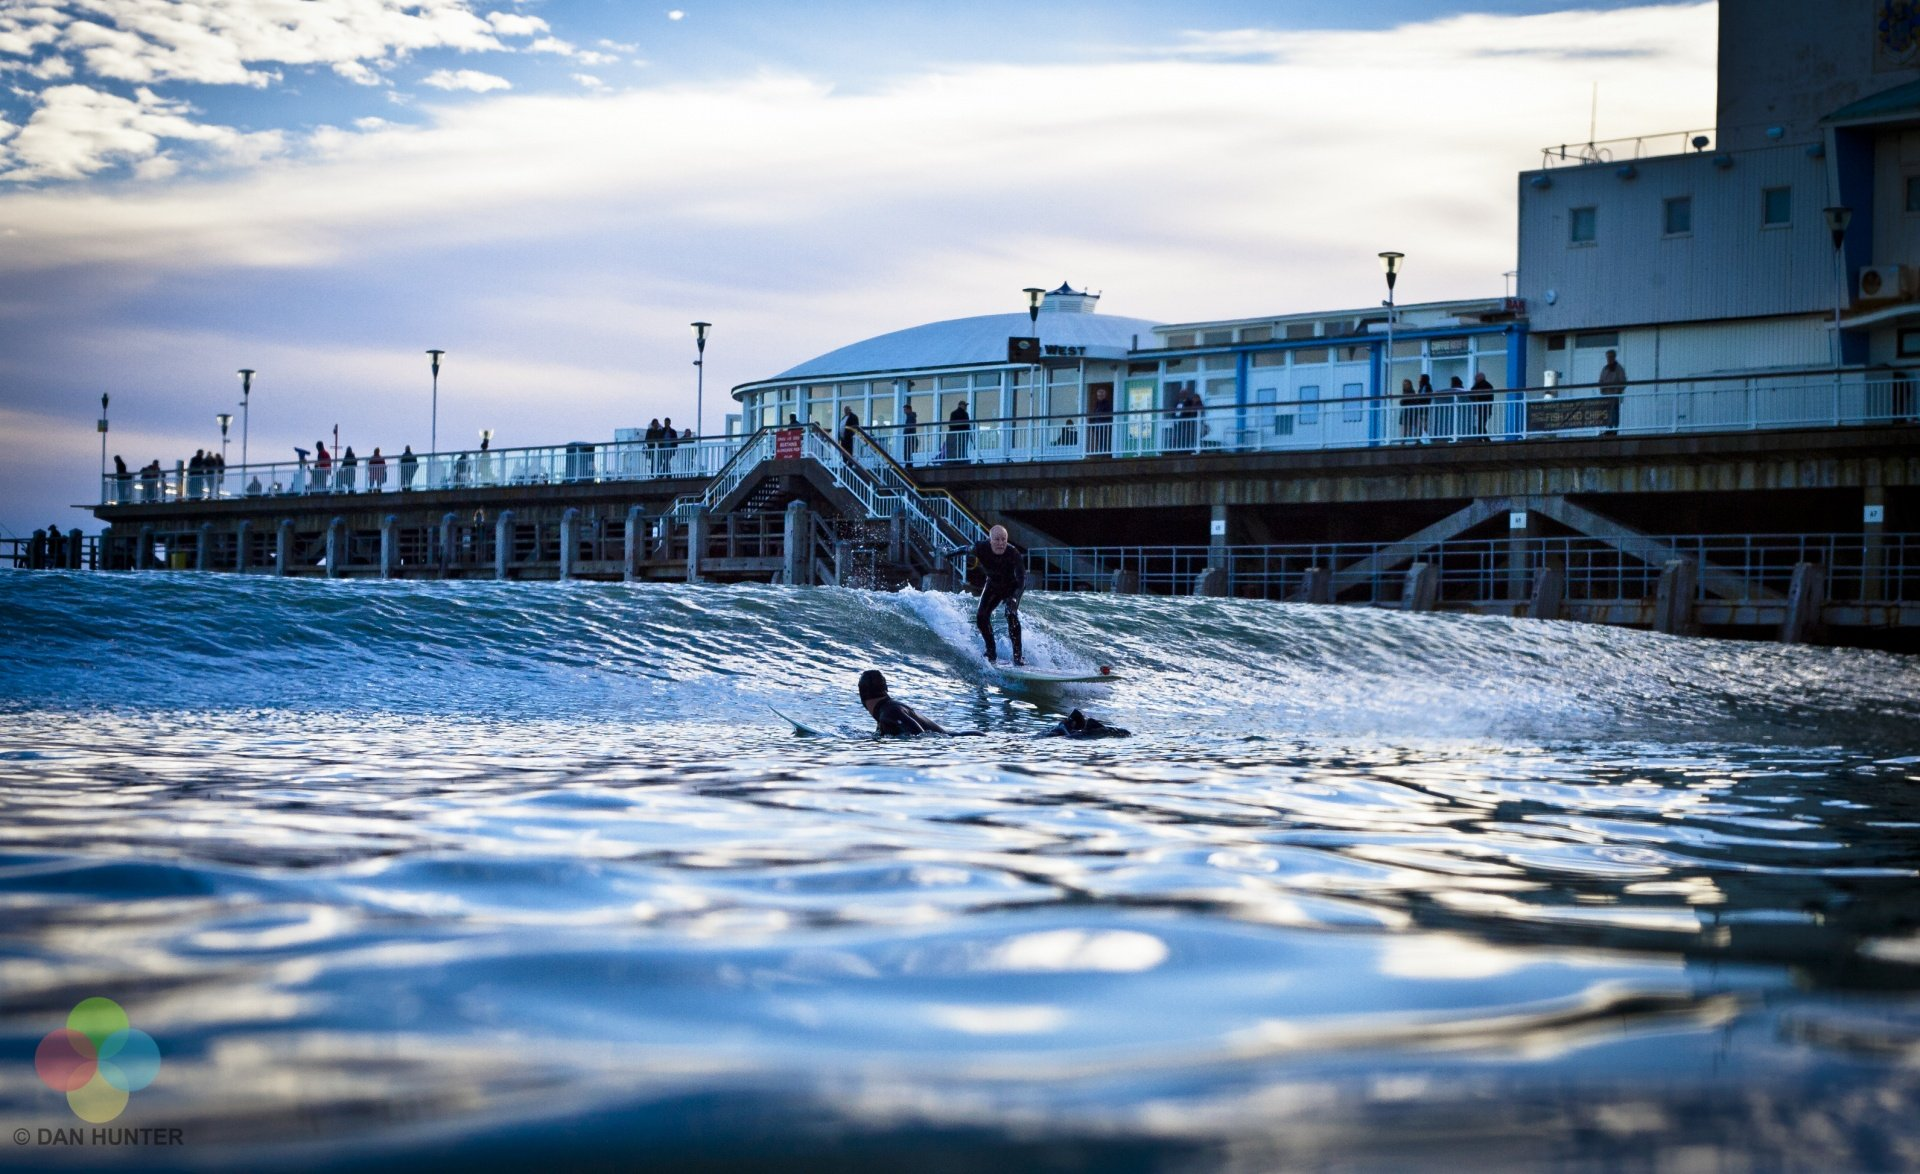 Dan Hunter's photo of Bournemouth